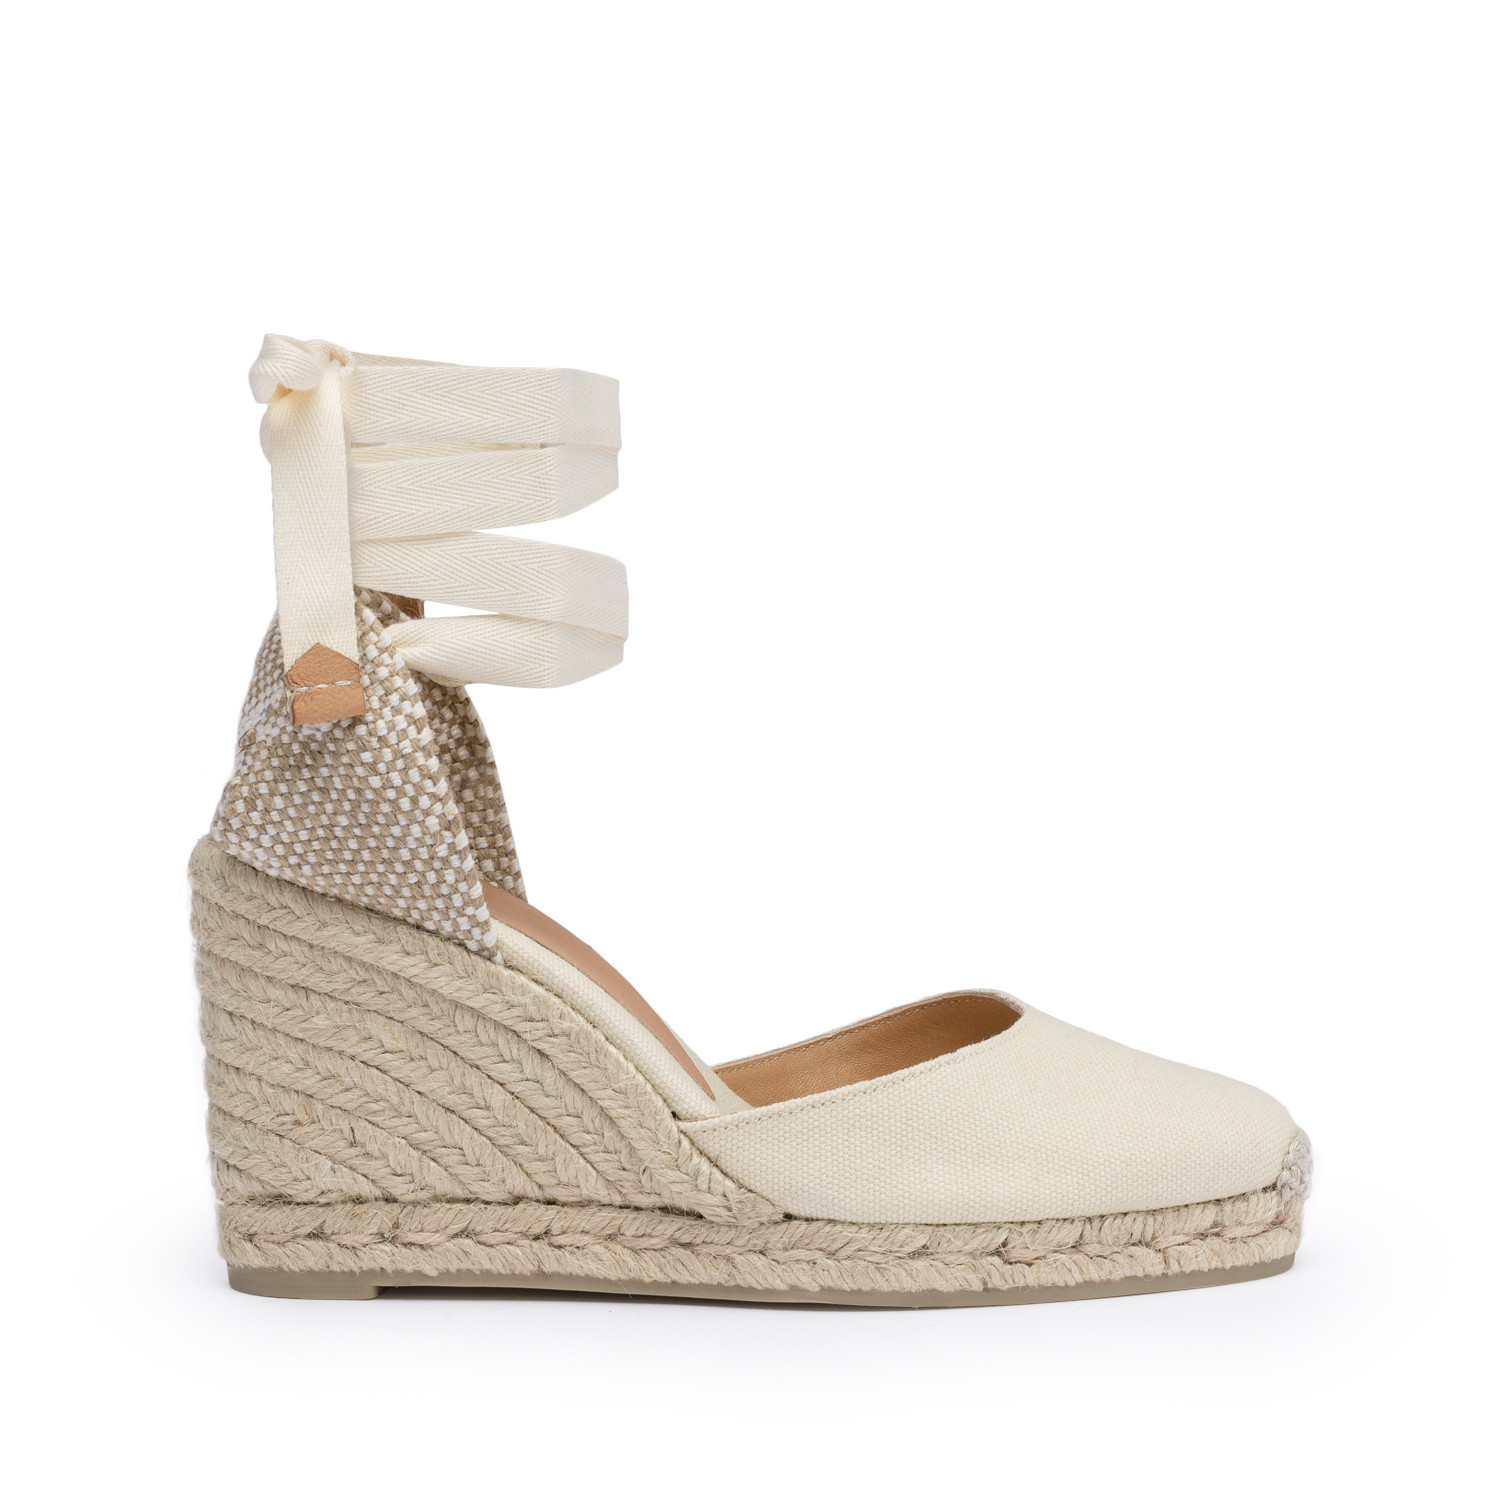 32013ff18e49 Castaner Women s Carina Canvas Wedge Espadrille Shoes 8CM Ivory 35